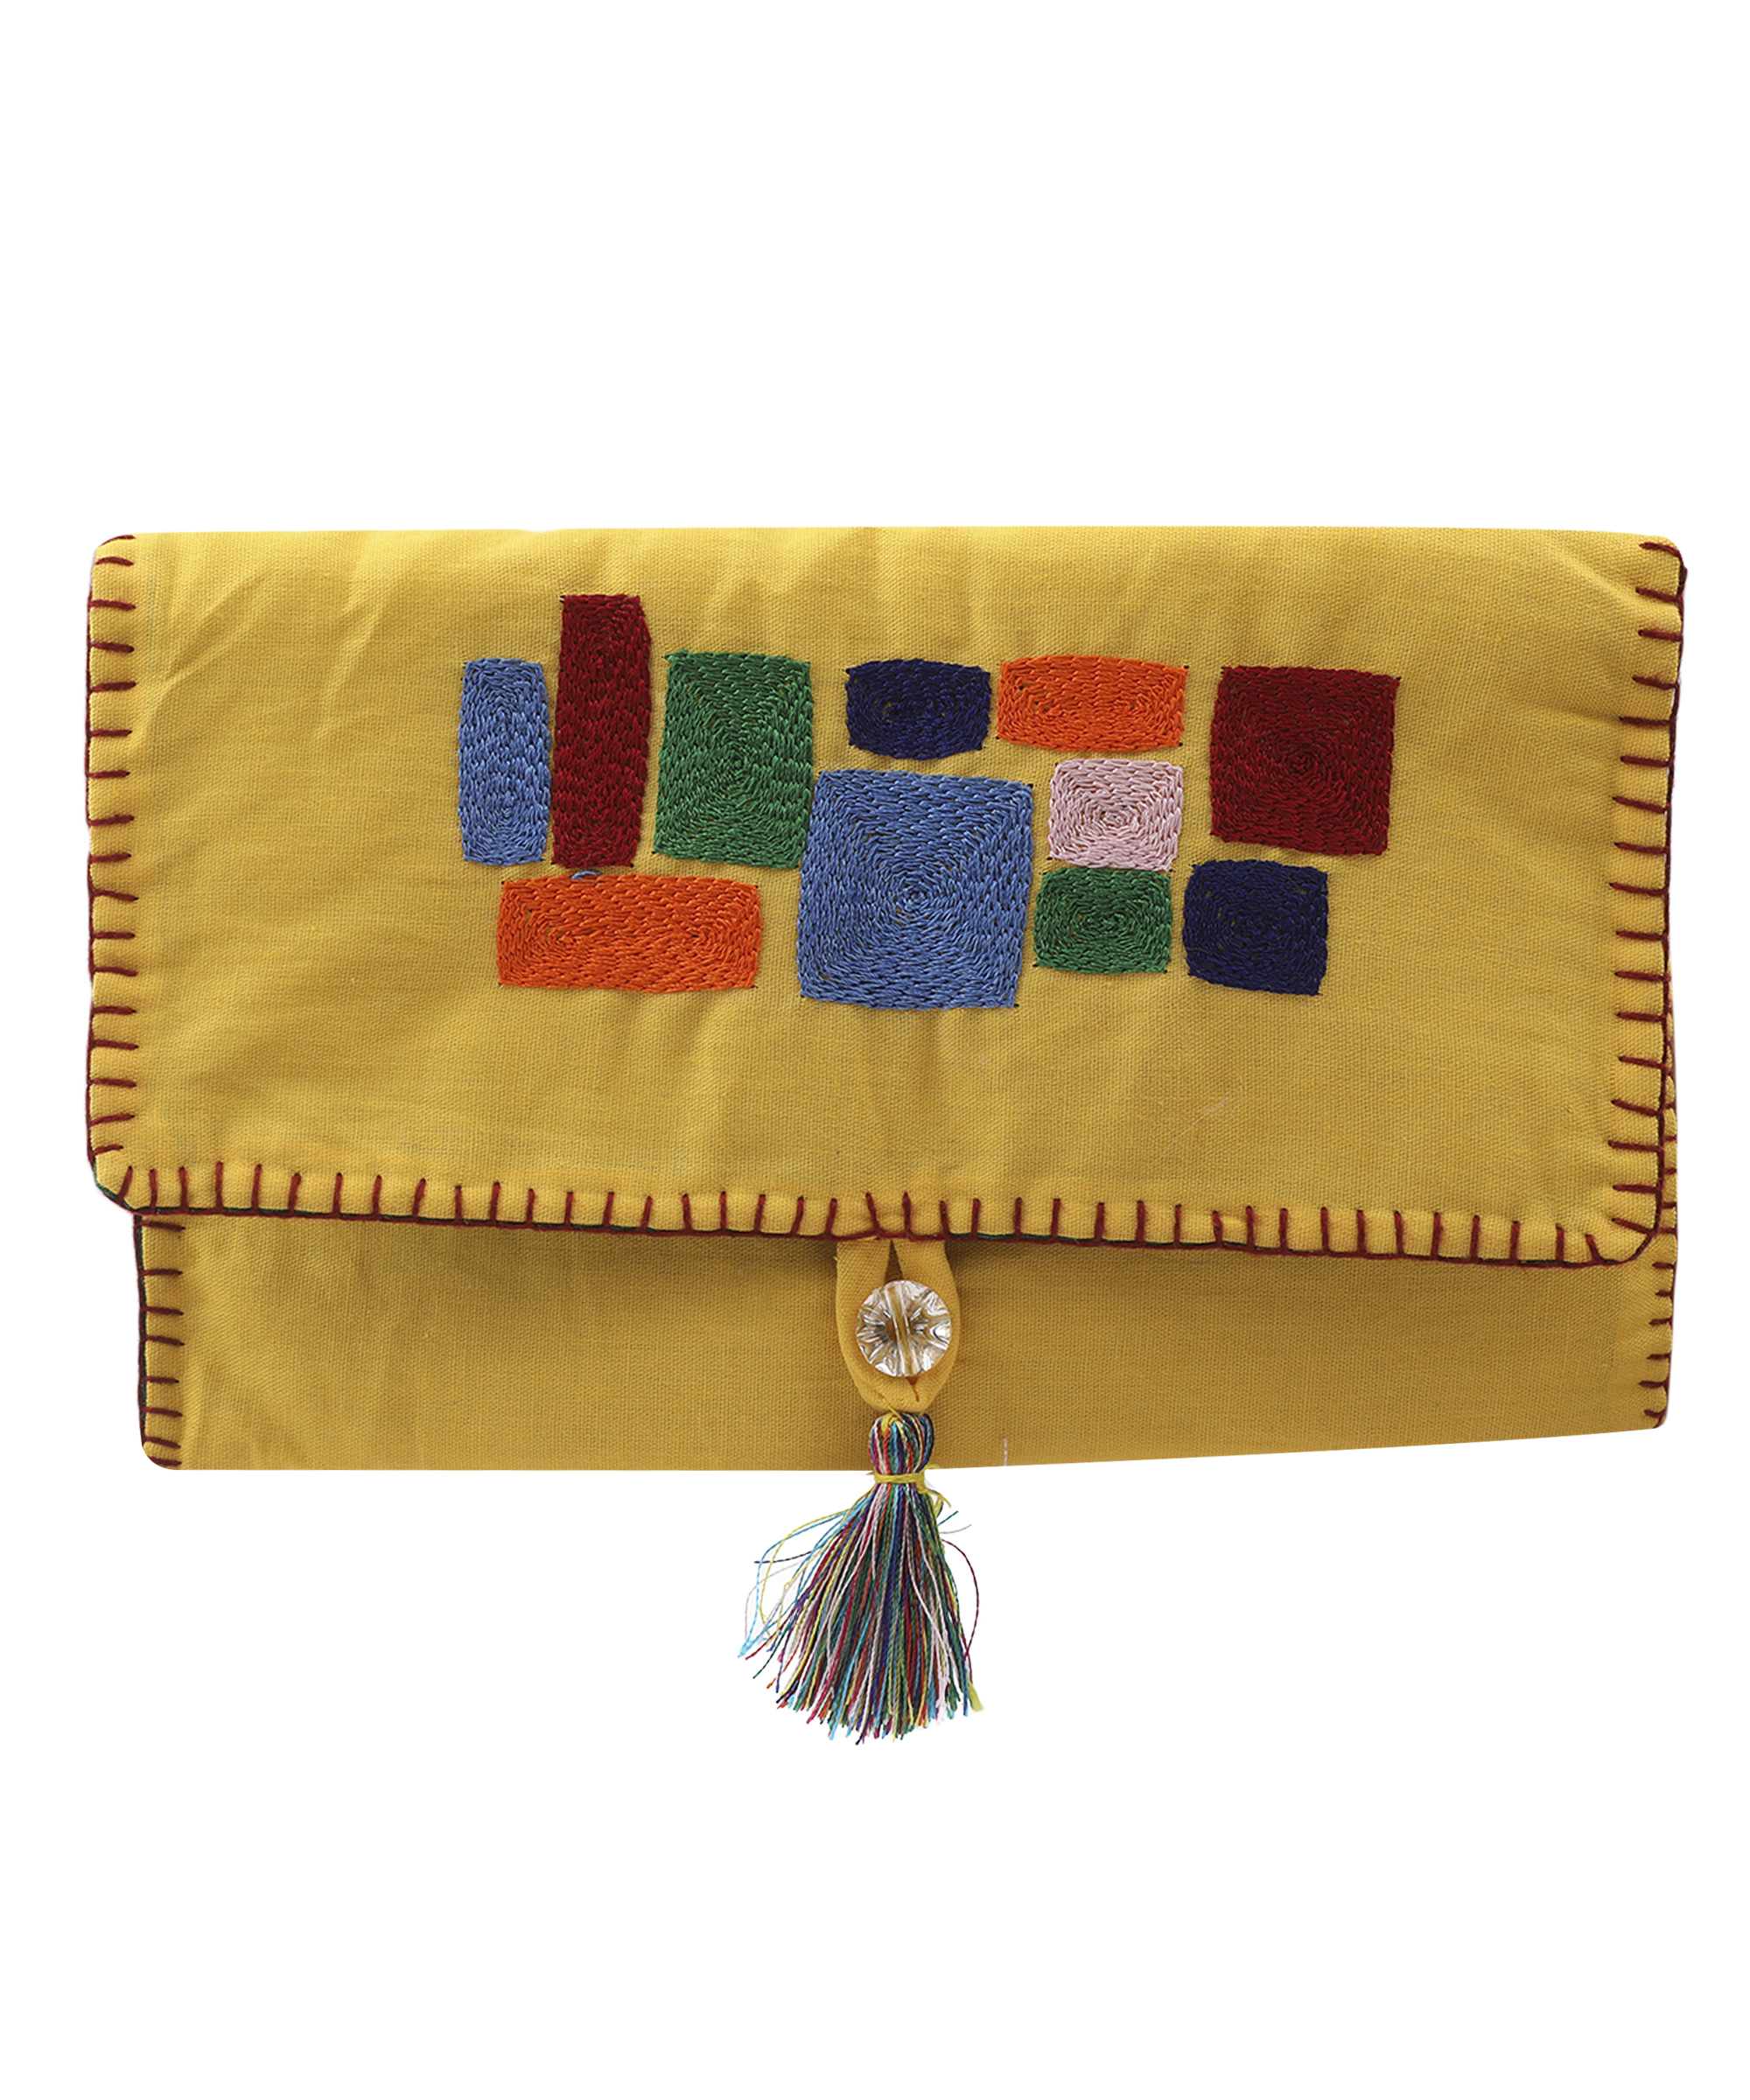 Women's Embroidered Clutch, Poplin Cotton Fabric (Yellow) Slider Thumbnail 2/4